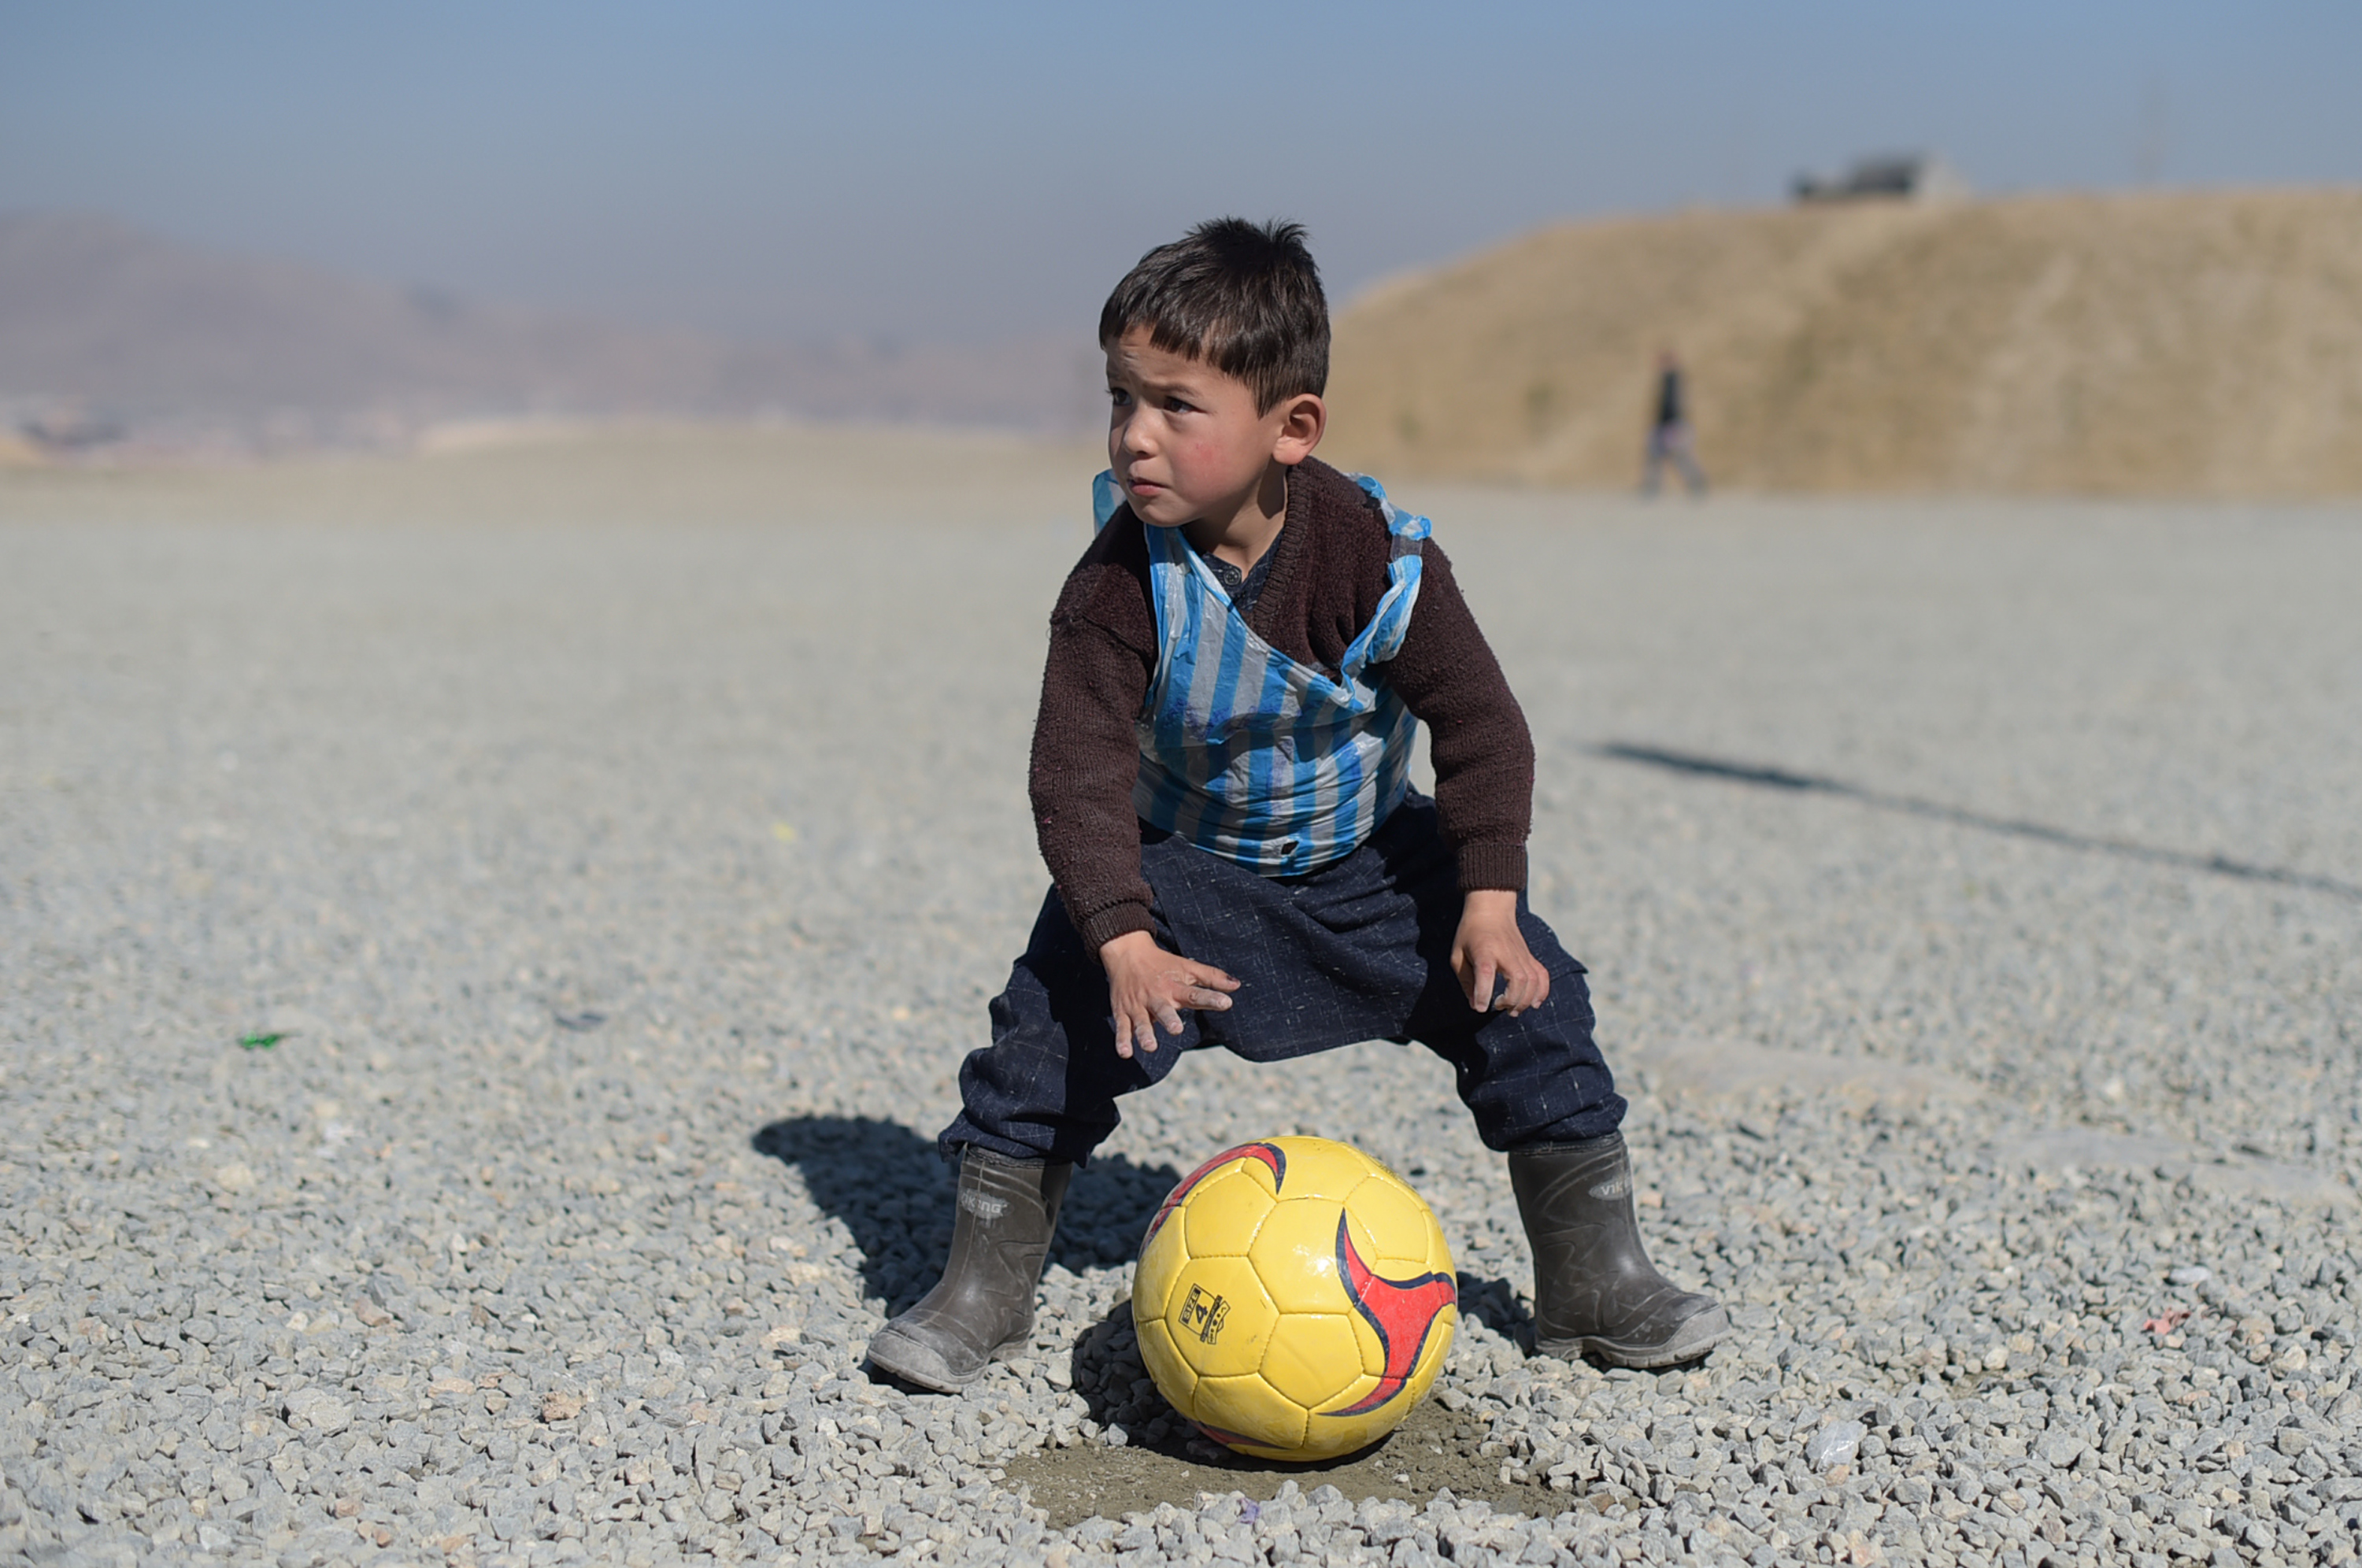 Murtaza Ahmadi, a young Lionel Messi fan, plays football in Kabul on Feb. 1, 2016